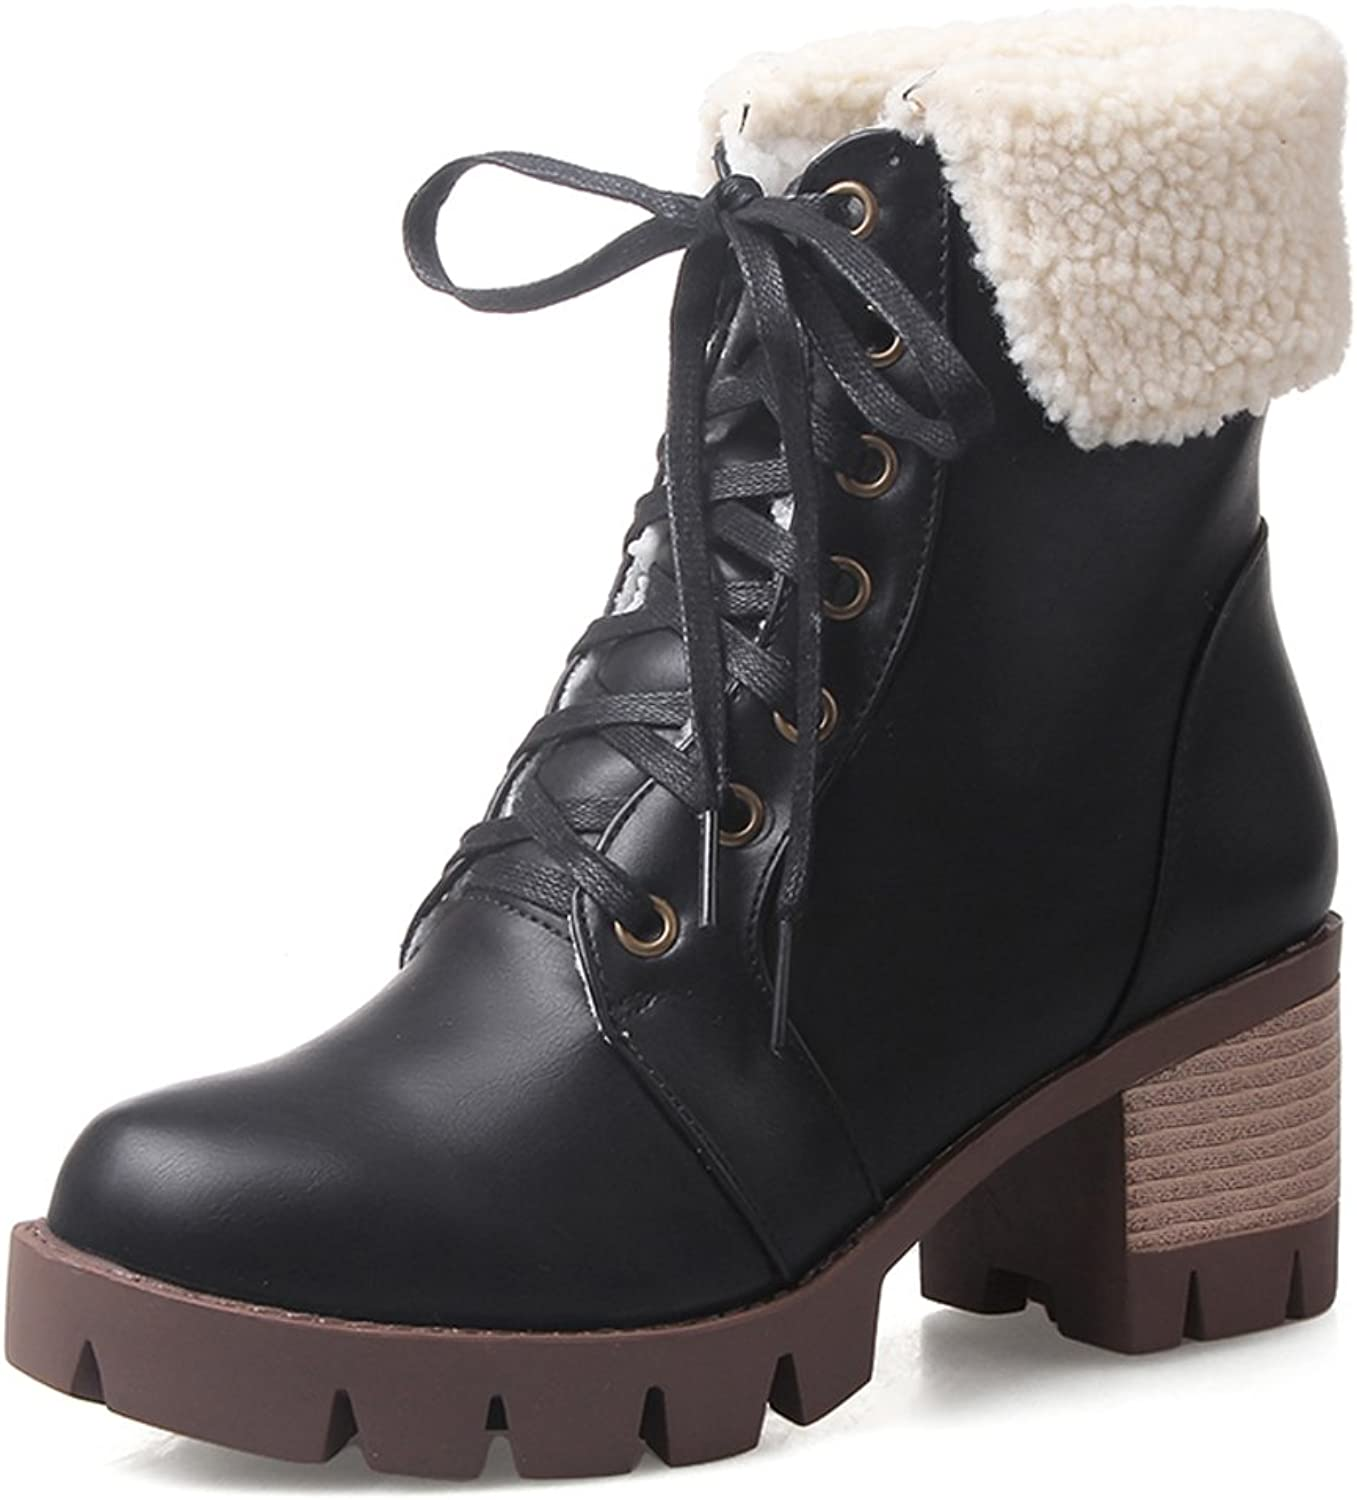 RHFDVGDS Winter fashion Martin boots in autumn and ladies chunky heels high heels short boots Take college students before boot